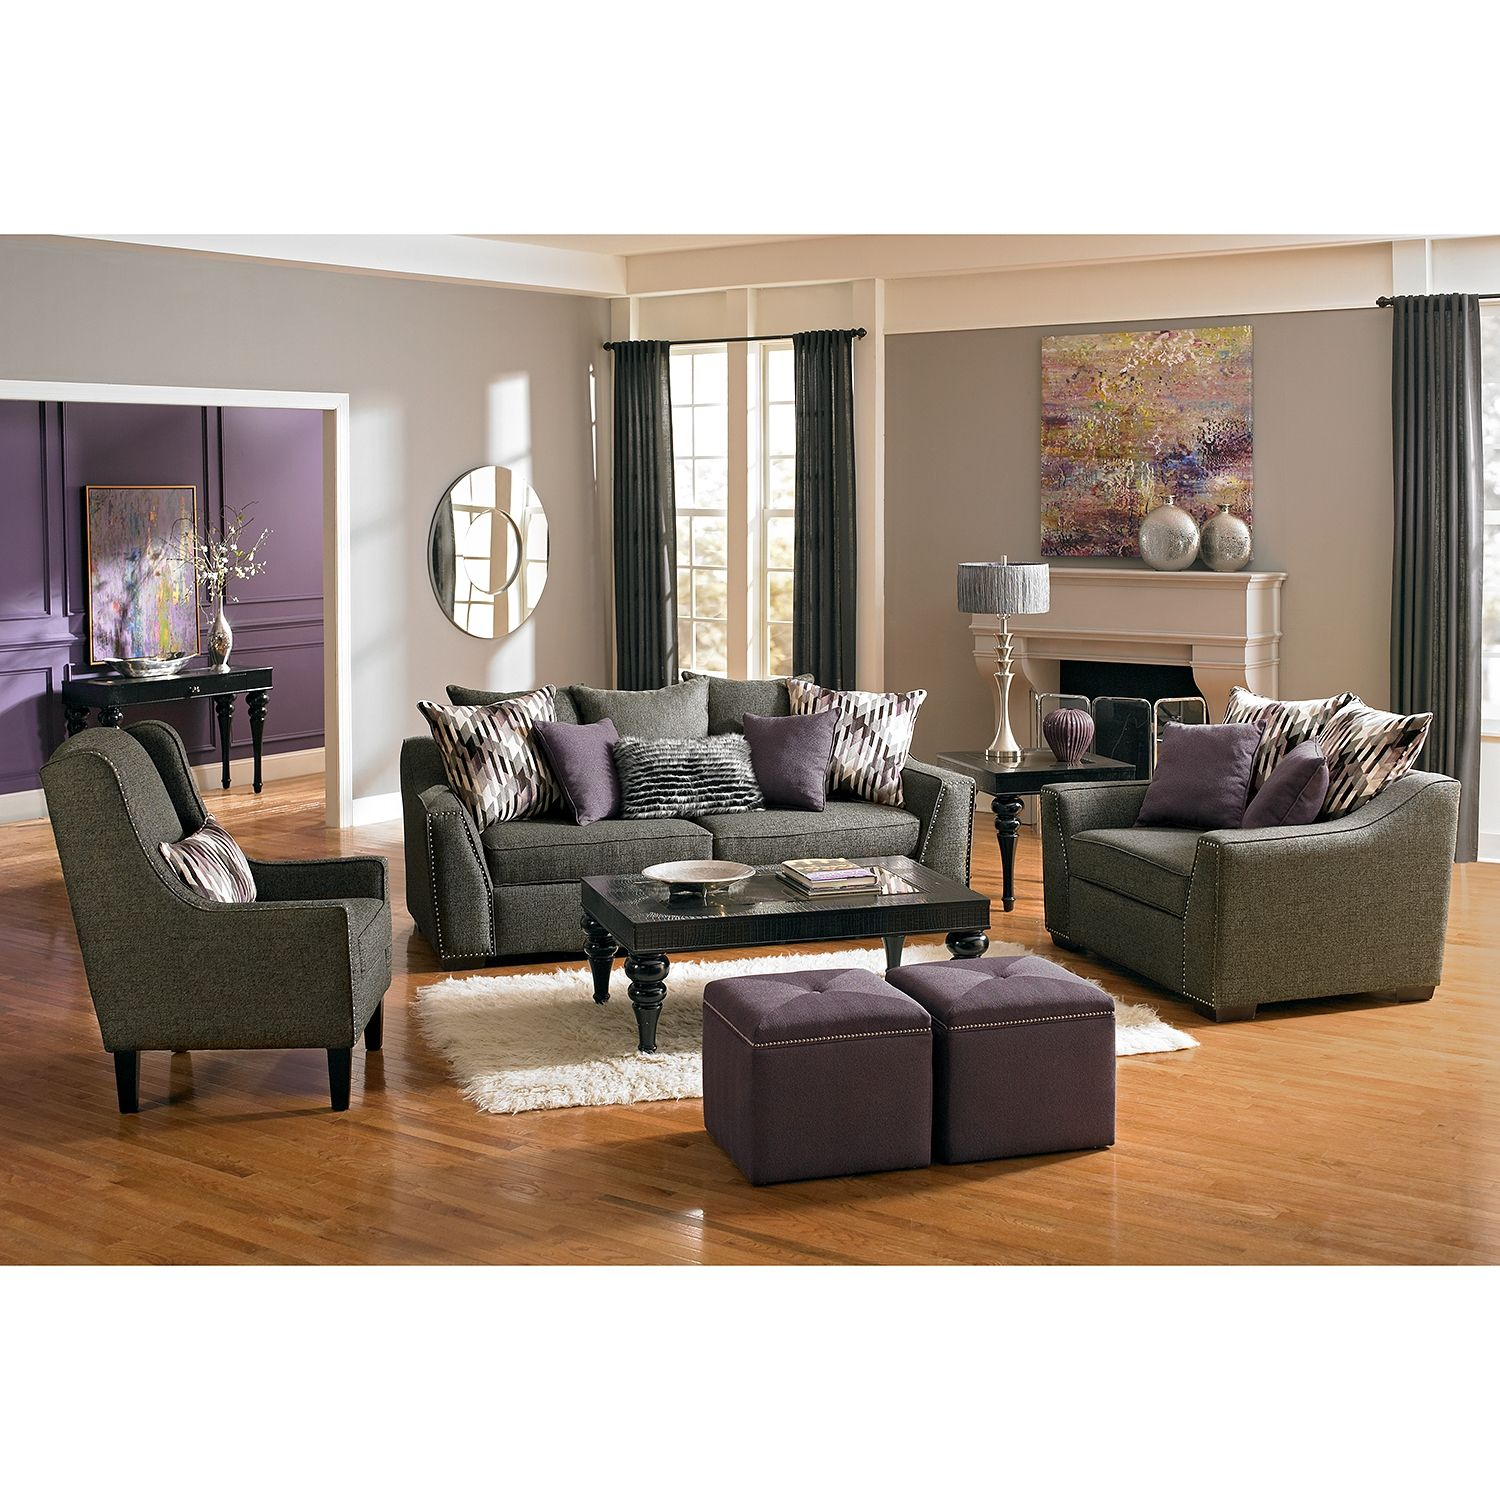 Value City Living Room Furniture The Suite Life From Its Generous Size To Its Posh Accents Our